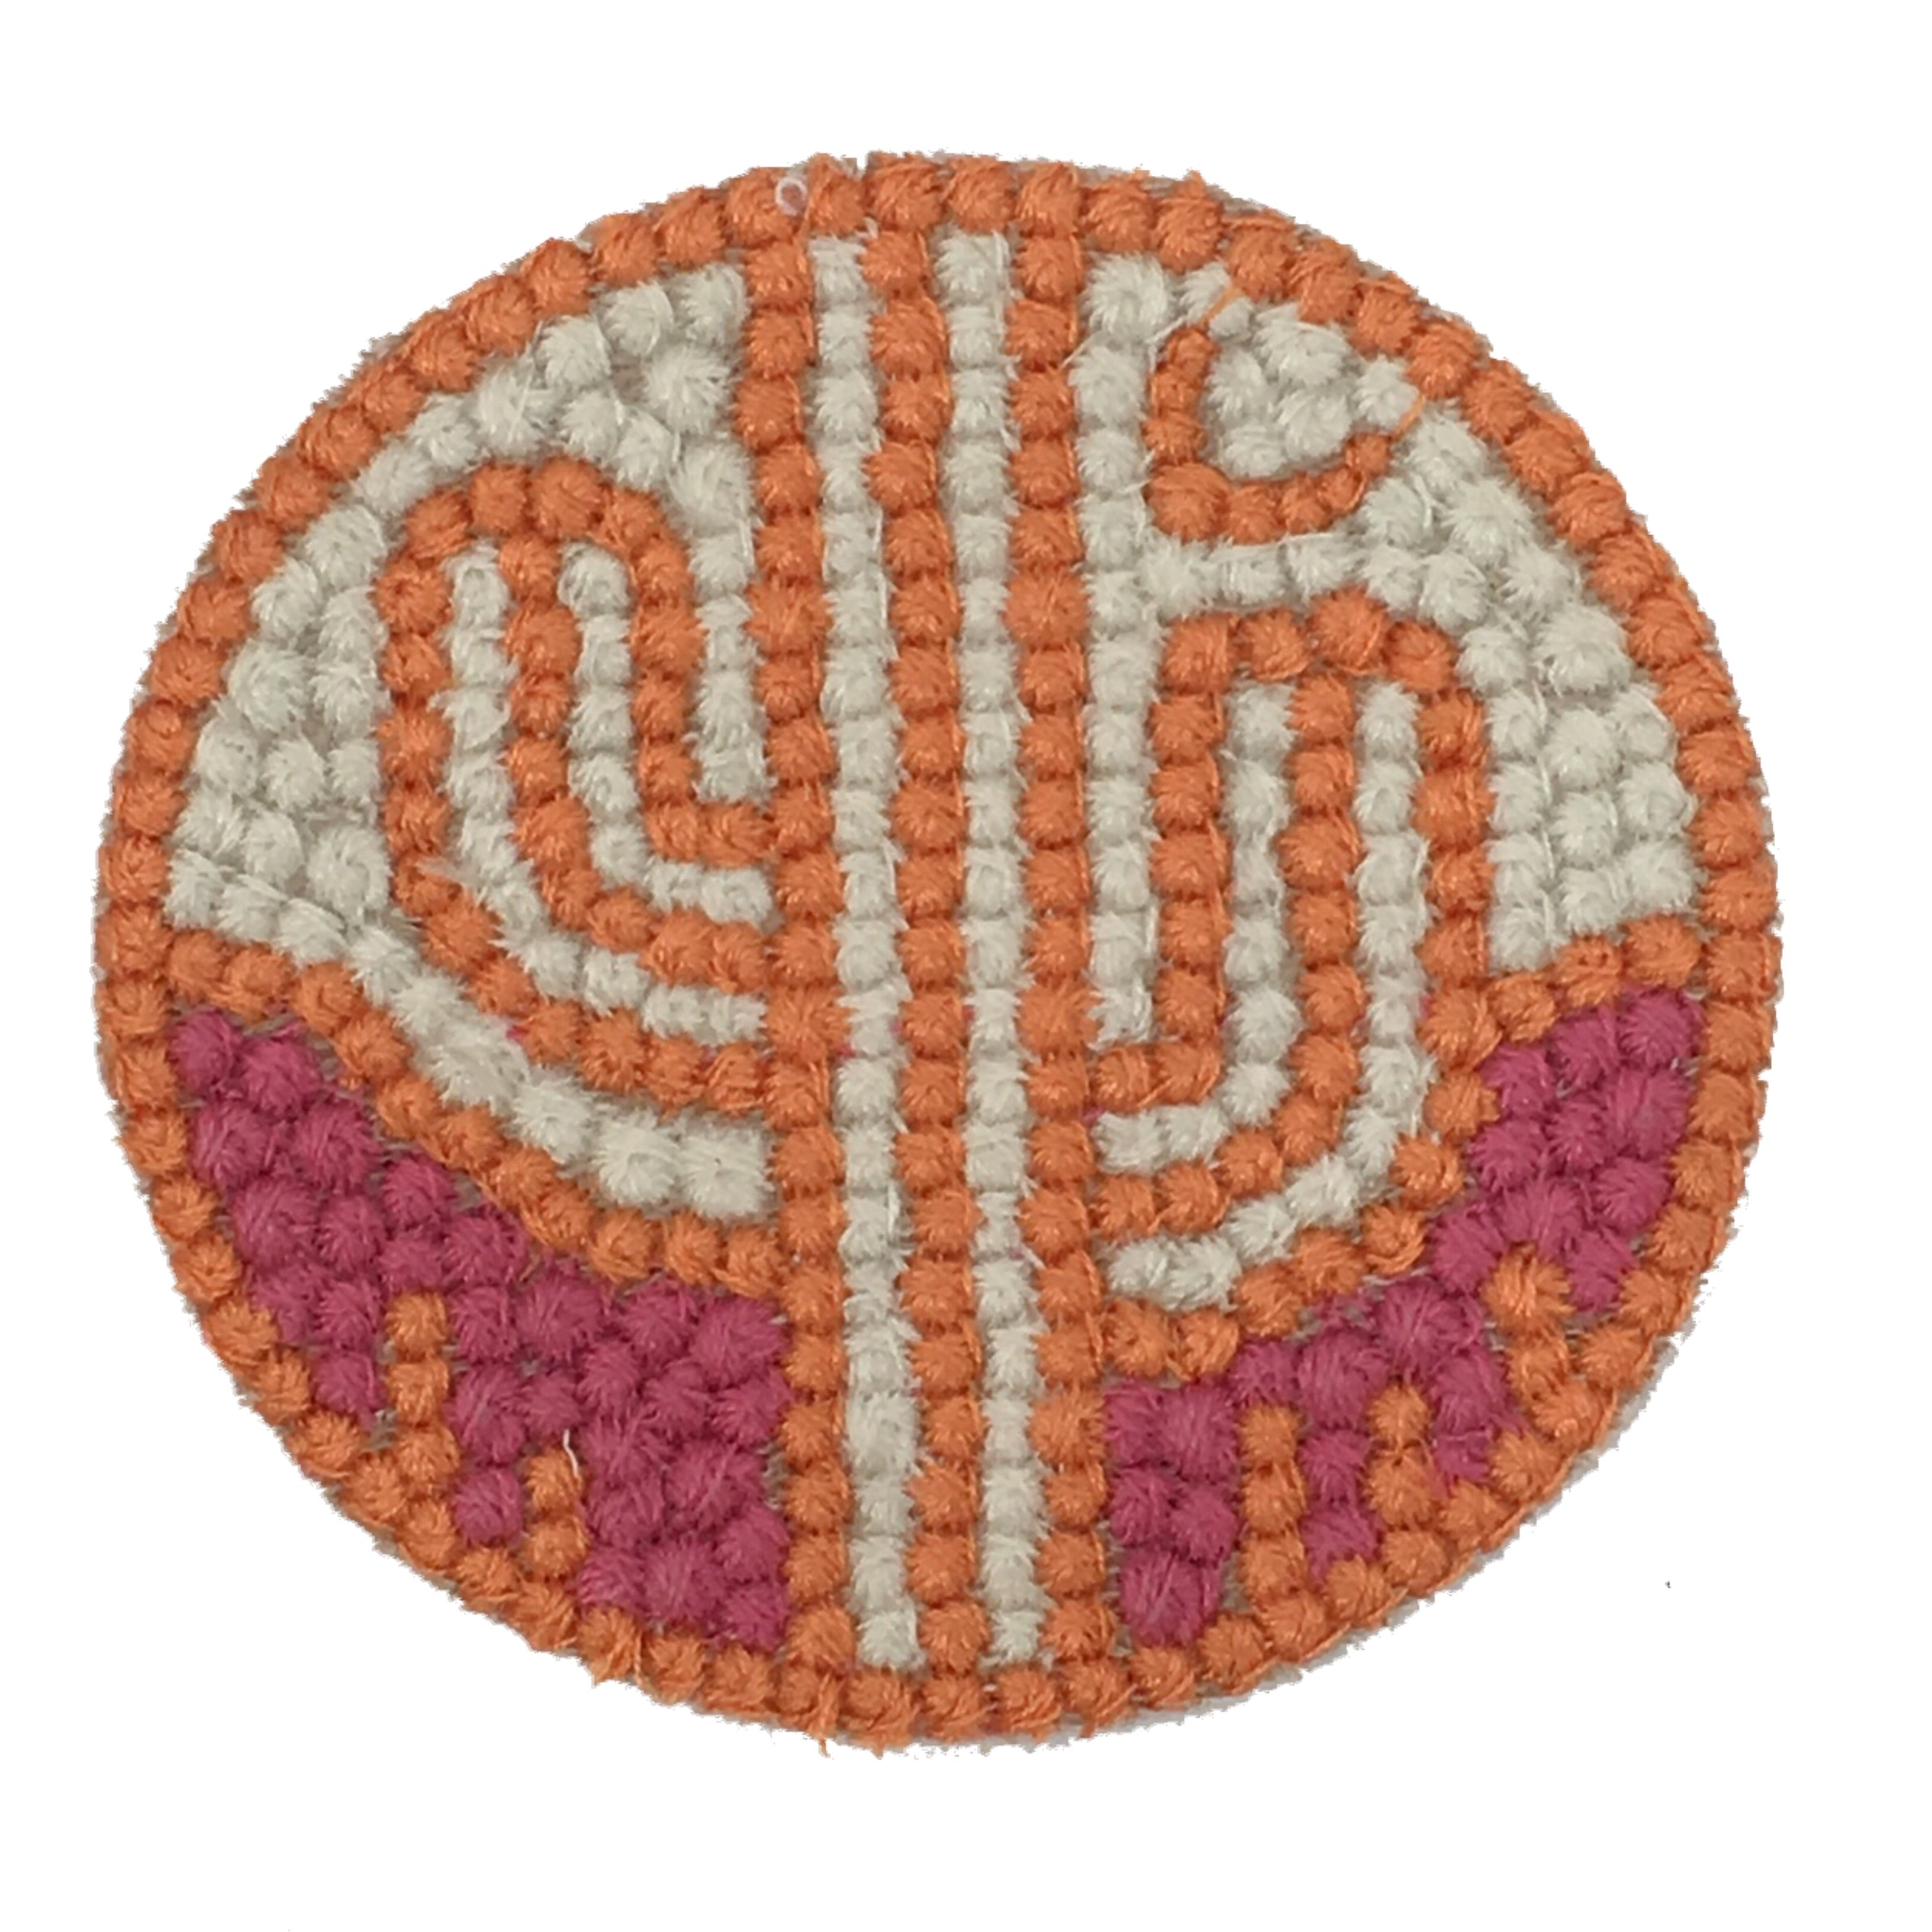 ORANGE & PINK CACTUS PATCH